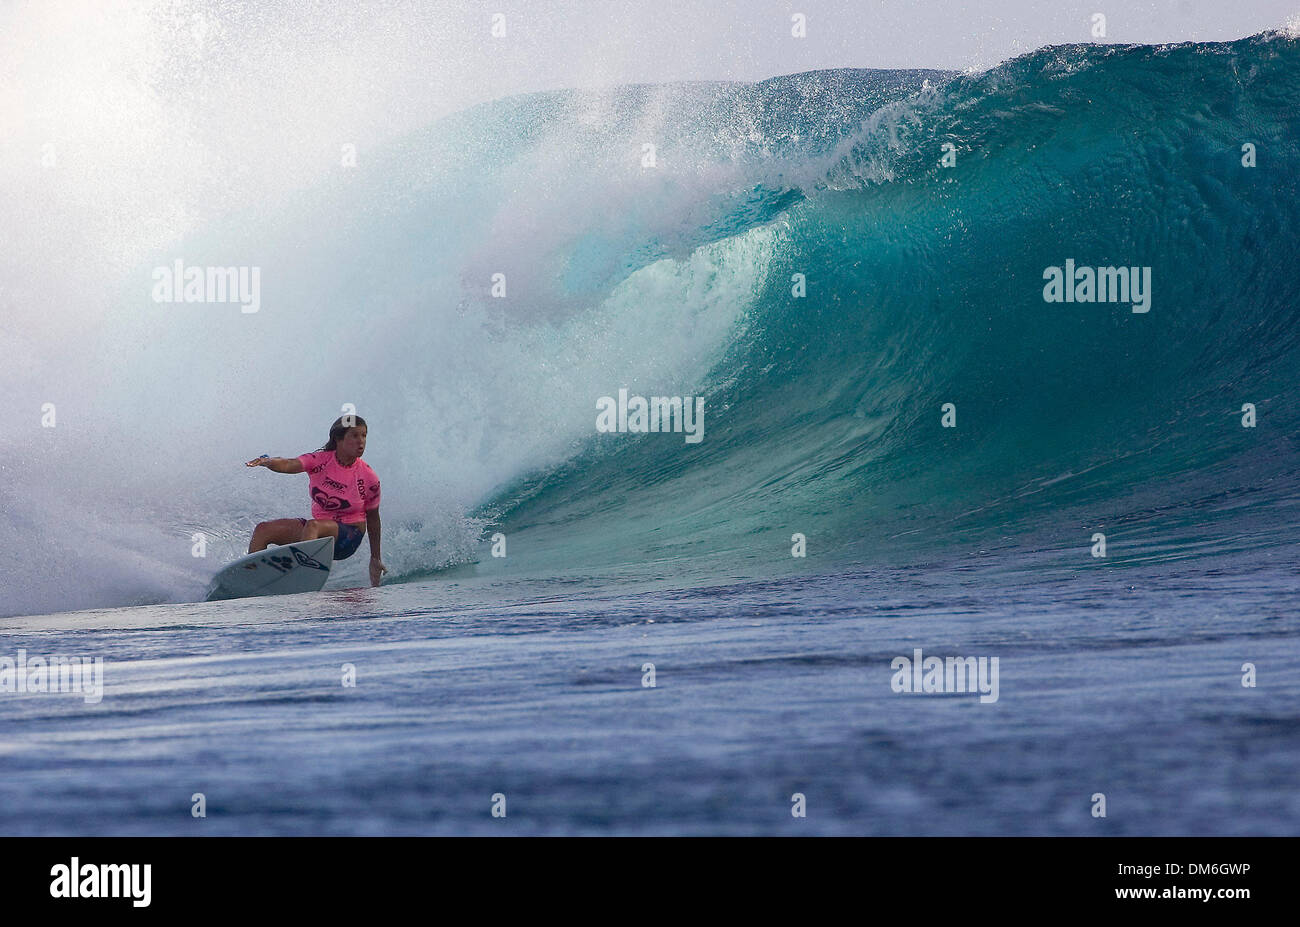 Apr 21, 2005; Tavarua Island, Fiji; Newly crowned Roxy Pro winner SOFIA MULANOVICH (Peru) won her second consecutive Roxy Pro title after she defeated six times ASP world champion Layne Beachley (Aus) in the final 30 seconds of the 35 minute final. Mulanovich, the reigning world champion, has moved into first place on the 2005 WCT ratings and pocketed US$10 600 in prize money. The  - Stock Image